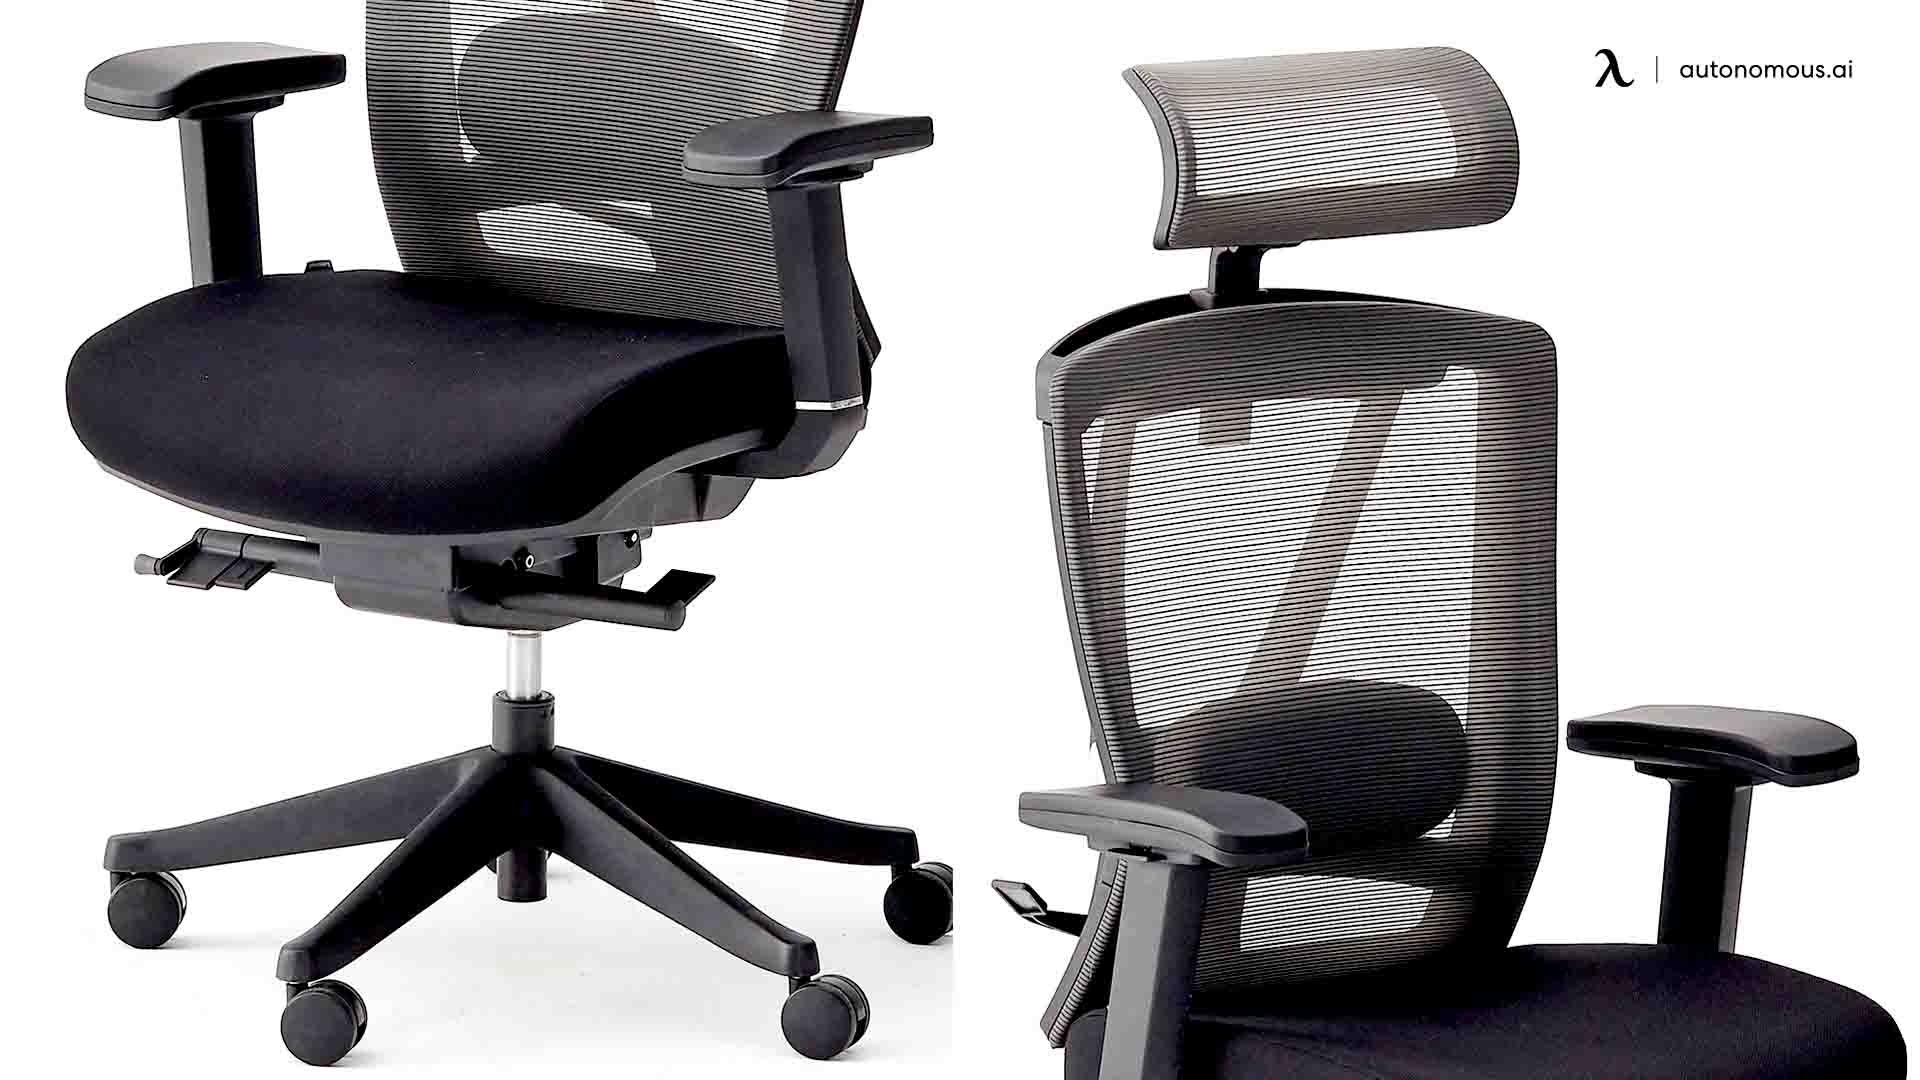 Advantages and Disadvantages of The Ergonomic Chair